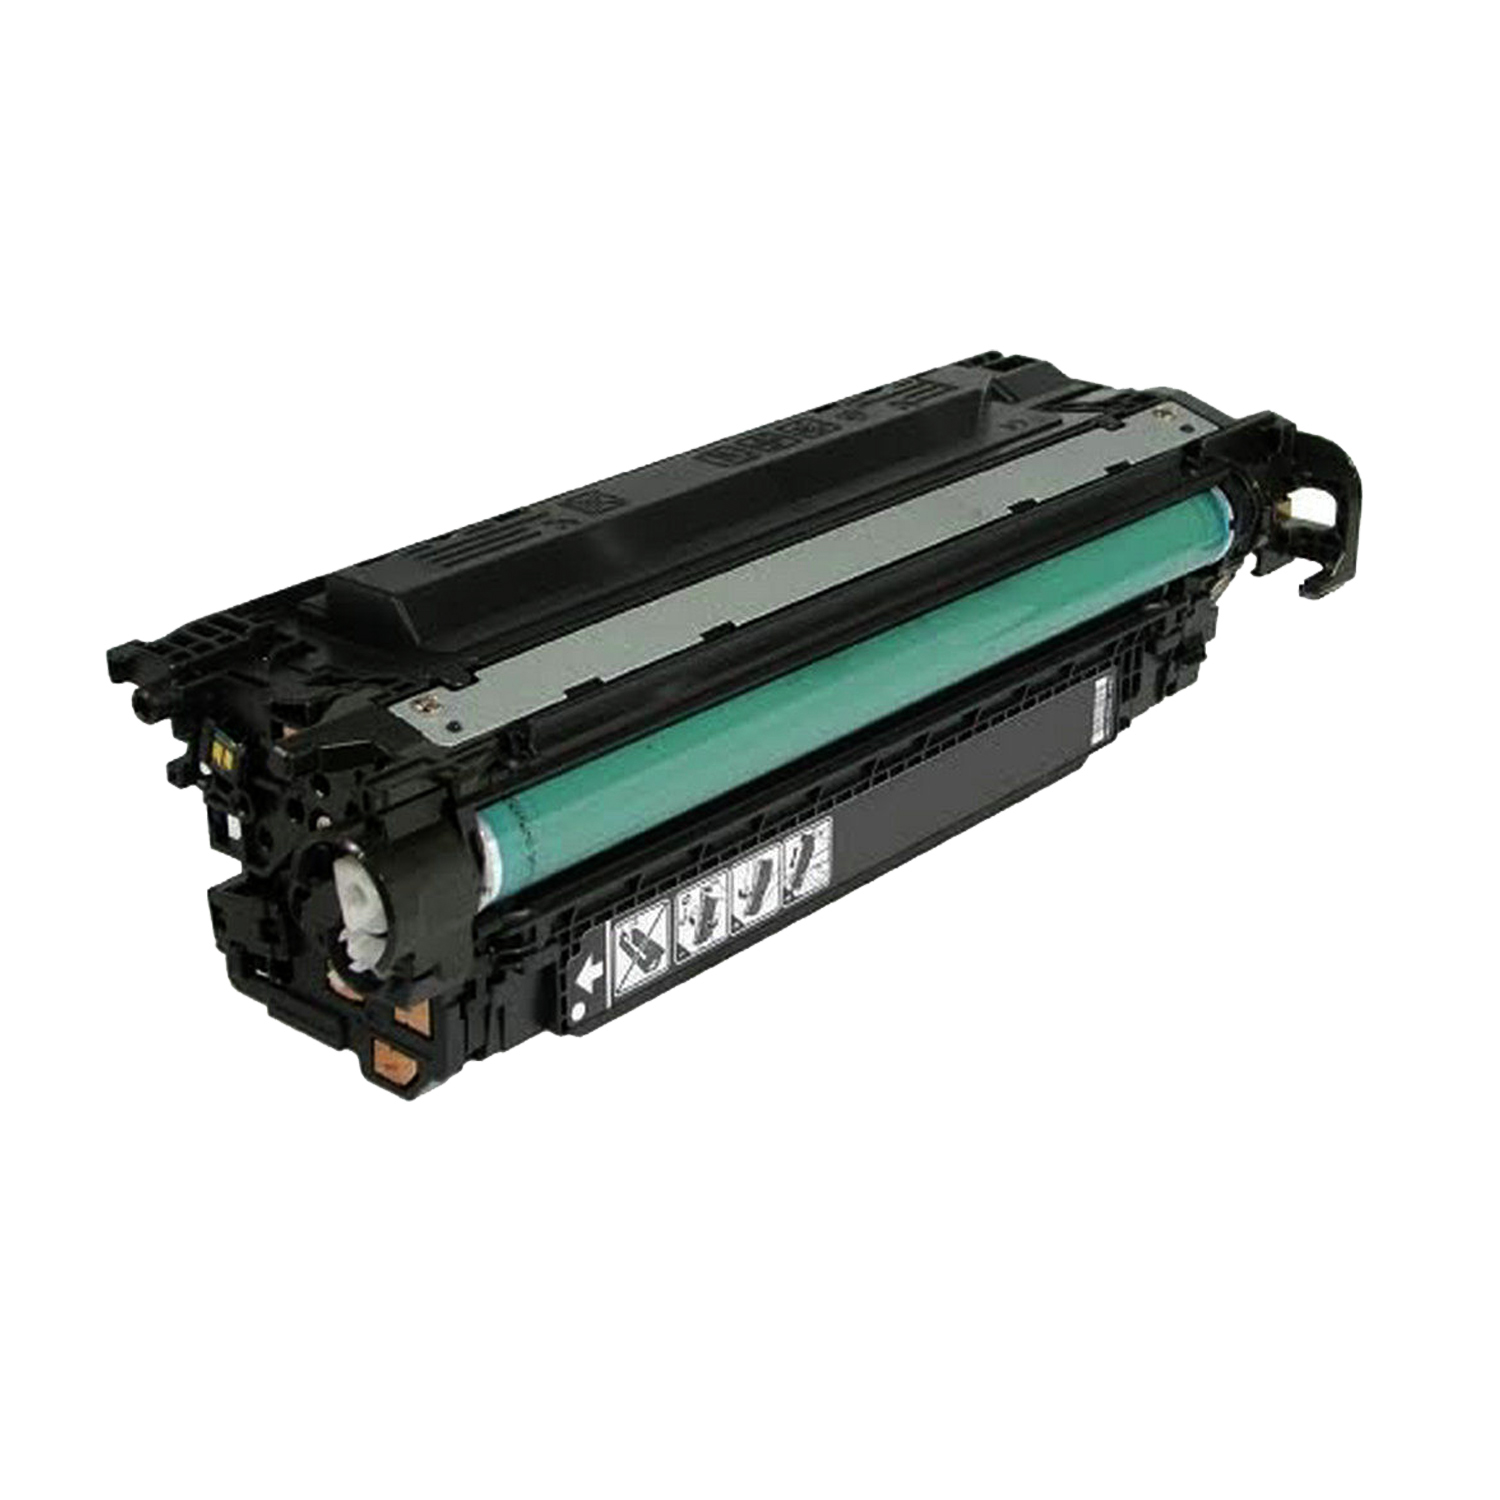 1 Pack New Compatible with HP CE250A Toner Cartridge for HP Color LaserJet CM3530 CM3530fs CP3525